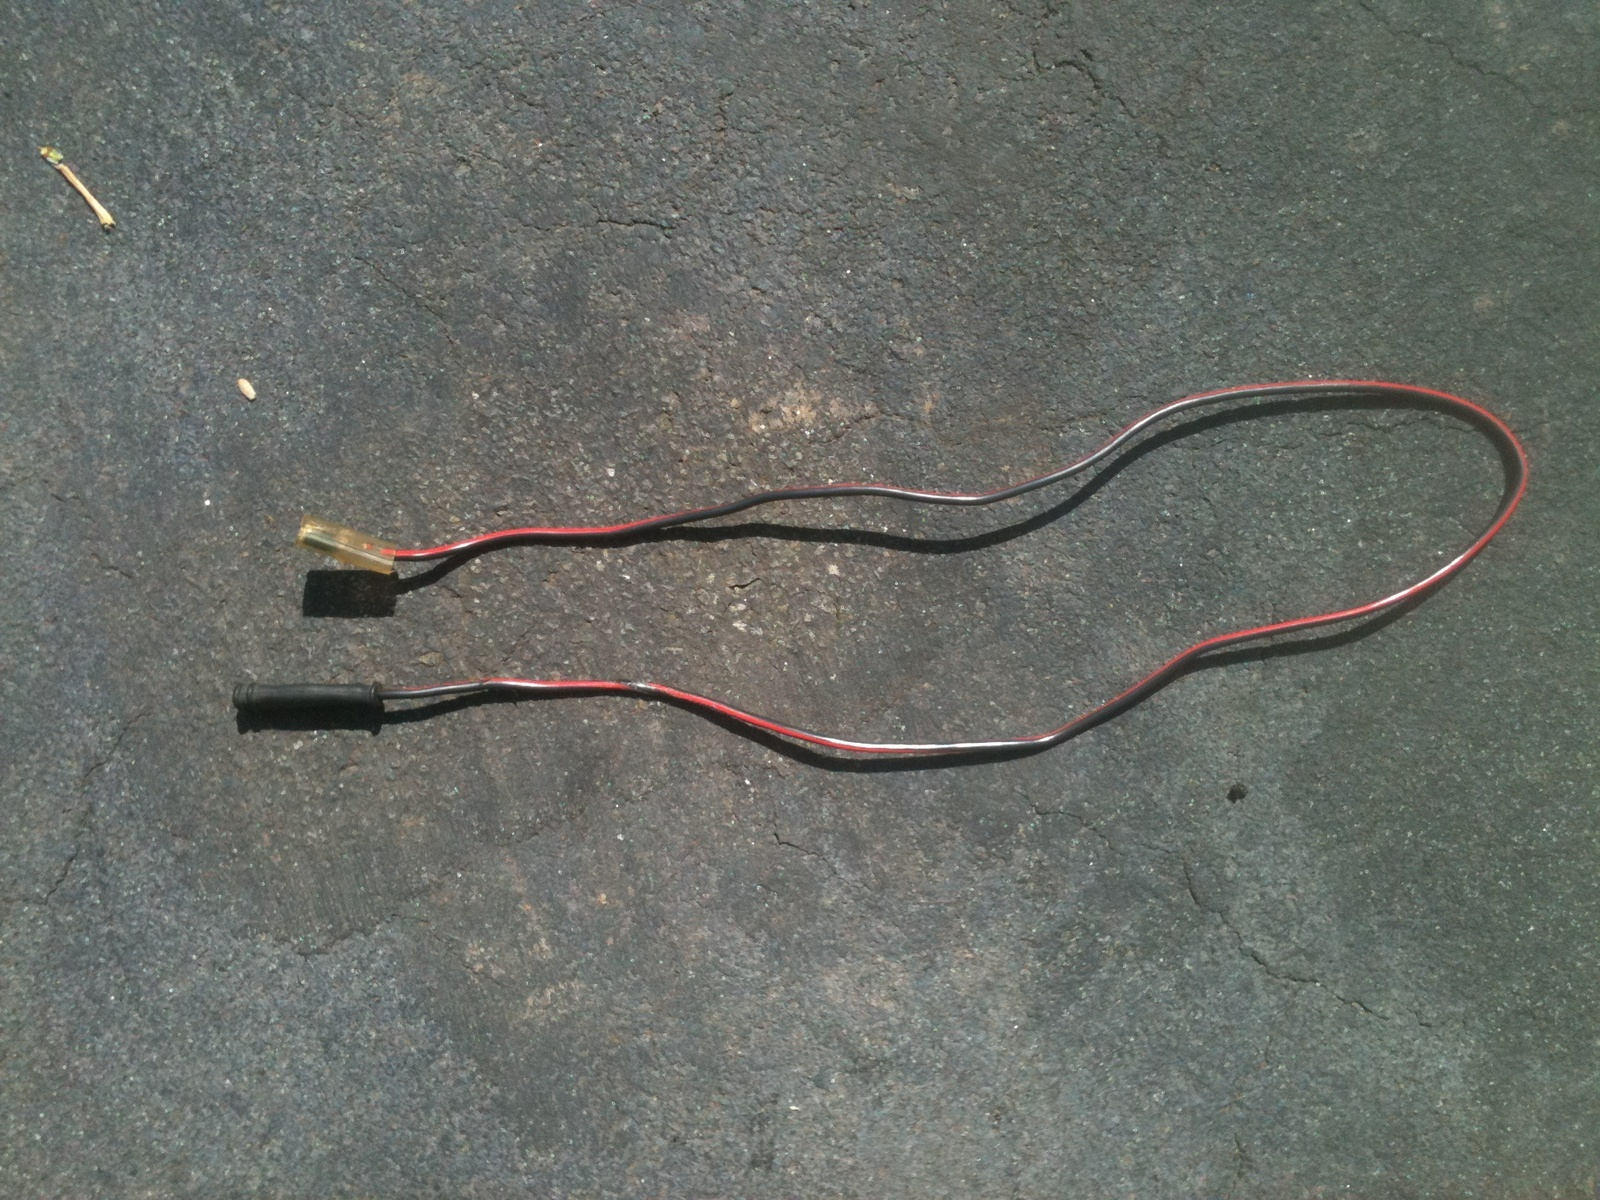 Porsche 944 Questions - Ihave a red and black wire with two female ...